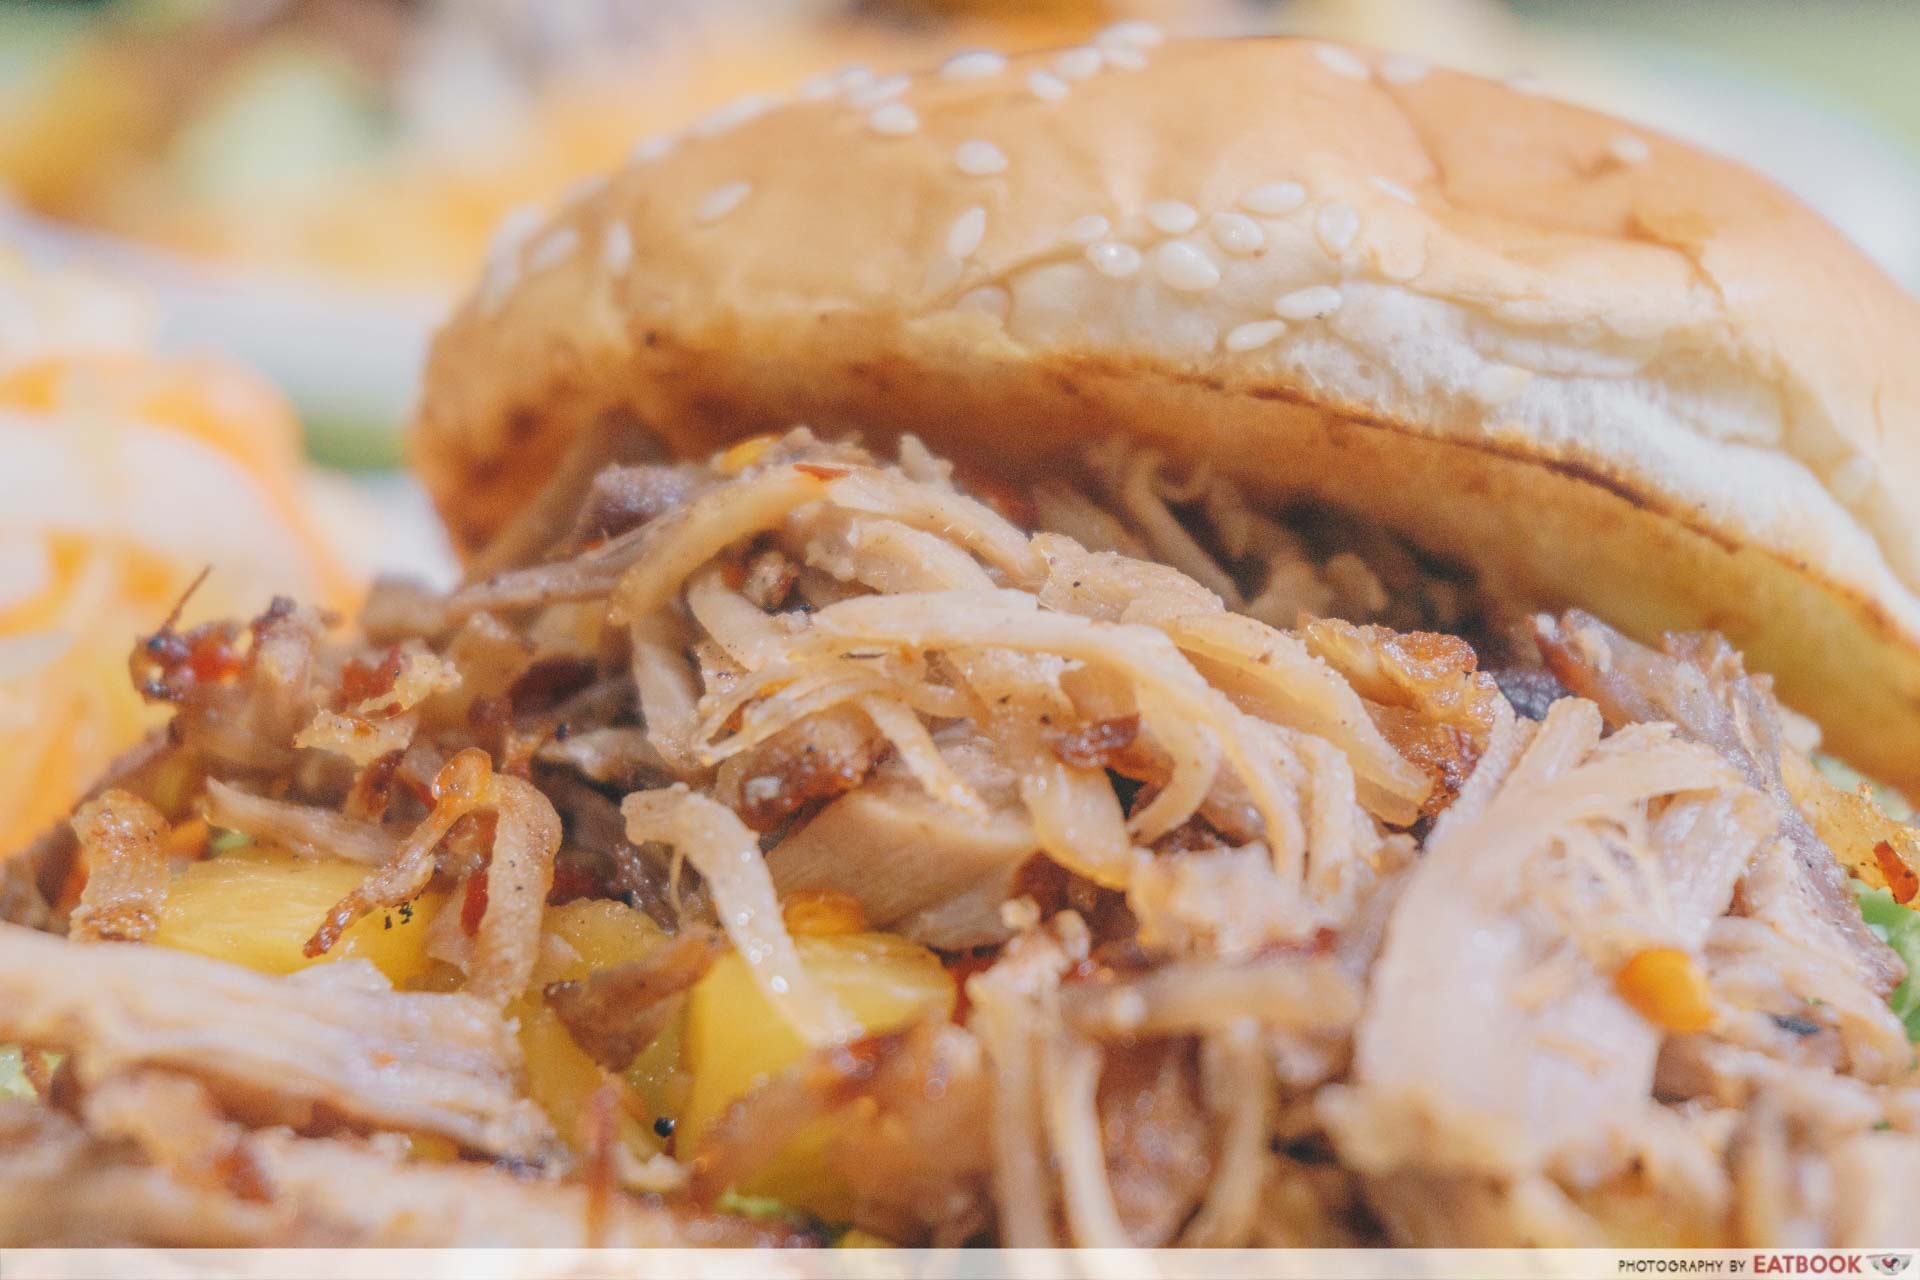 Oinkers & Buns - Pulled Pork Close Up